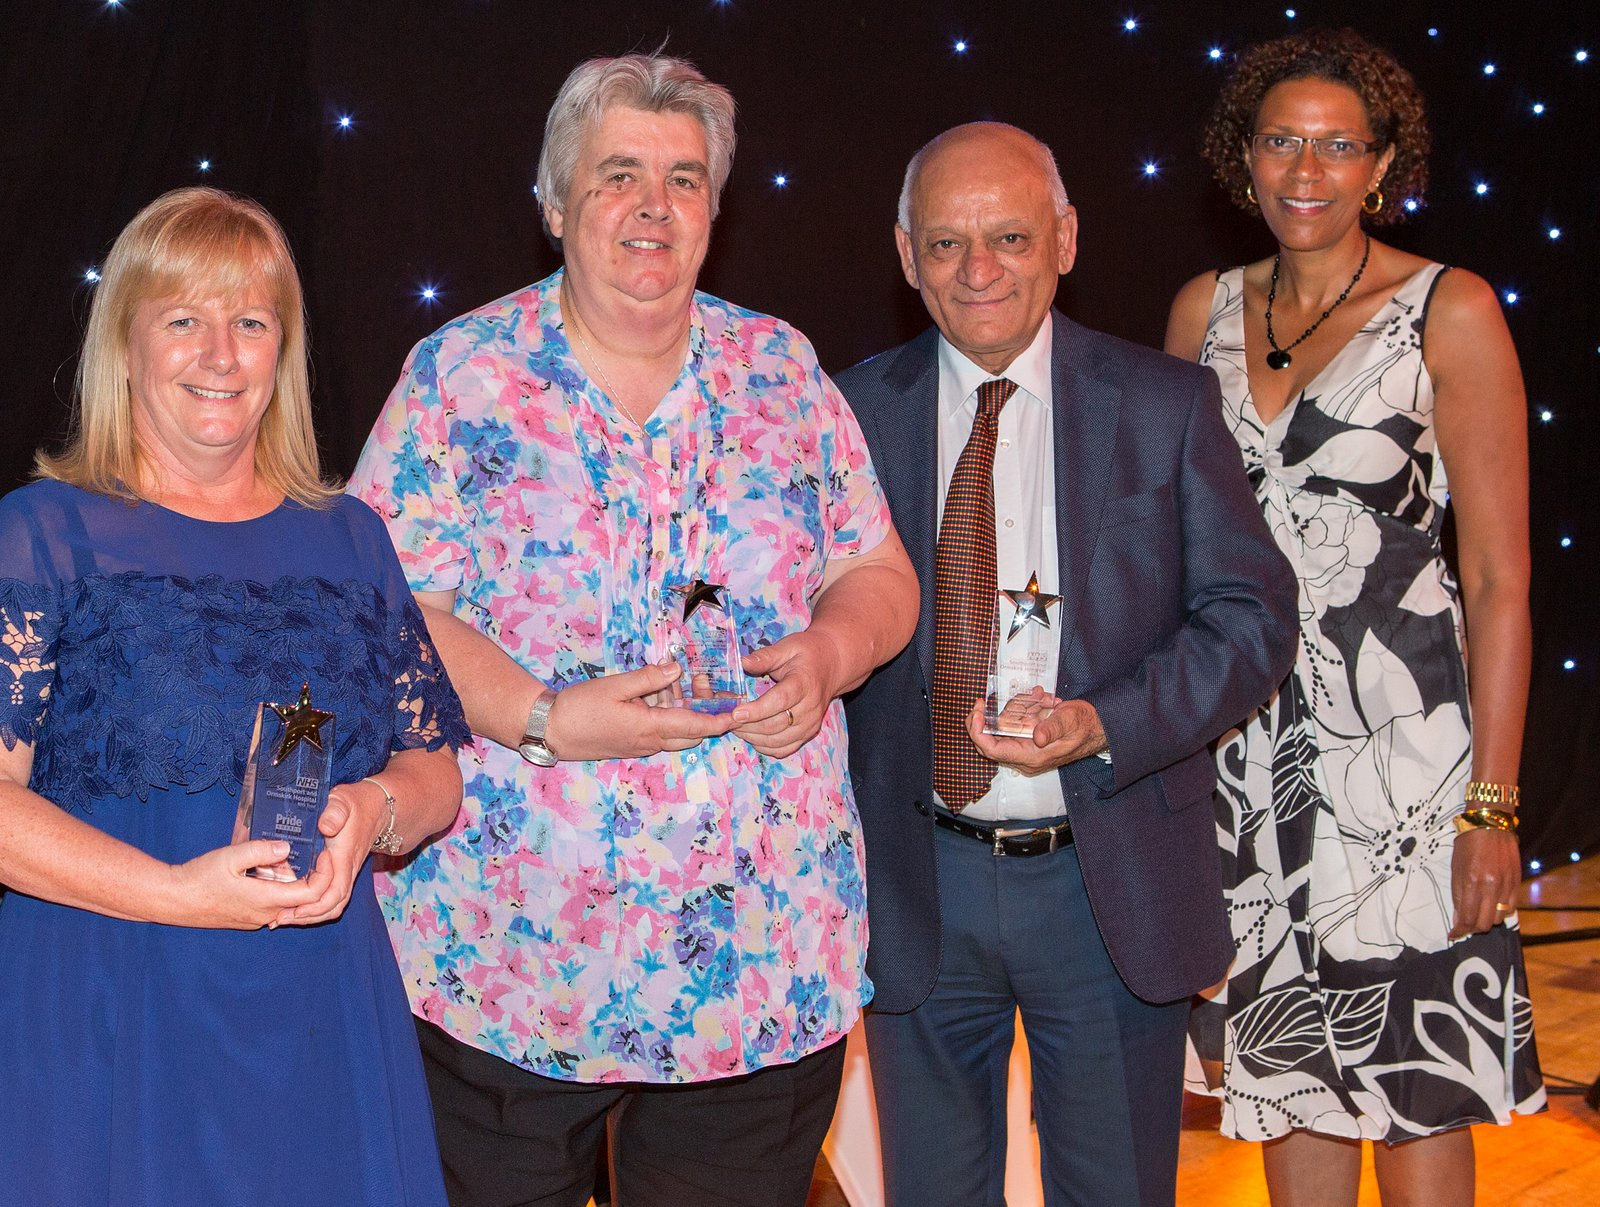 More than 100 years of caring for spinal injured patients by three NHS staff was recognised this month with Lifetime Achievement Awards.     Consultant surgeon Bakul Soni, Sister Sandra McCarthy and occupational therapy lead Julie Jones  were honoured at Southport and Ormskirk Hospital NHS TrustÂ's...